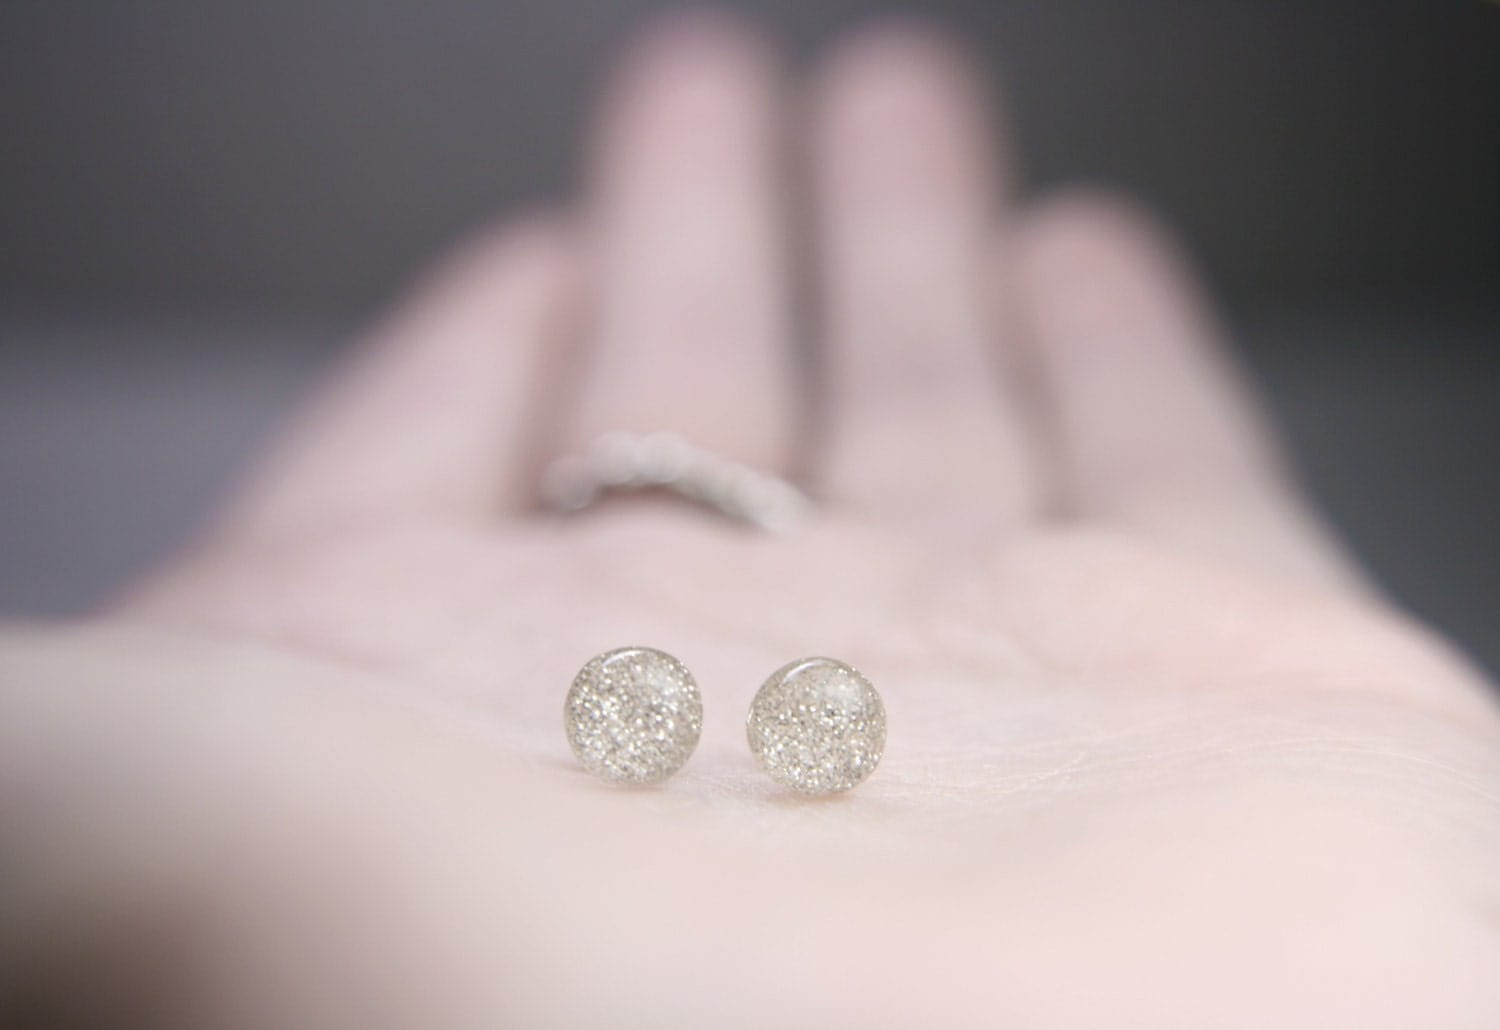 sterling post earrings in sparkly white globe style - 5mm